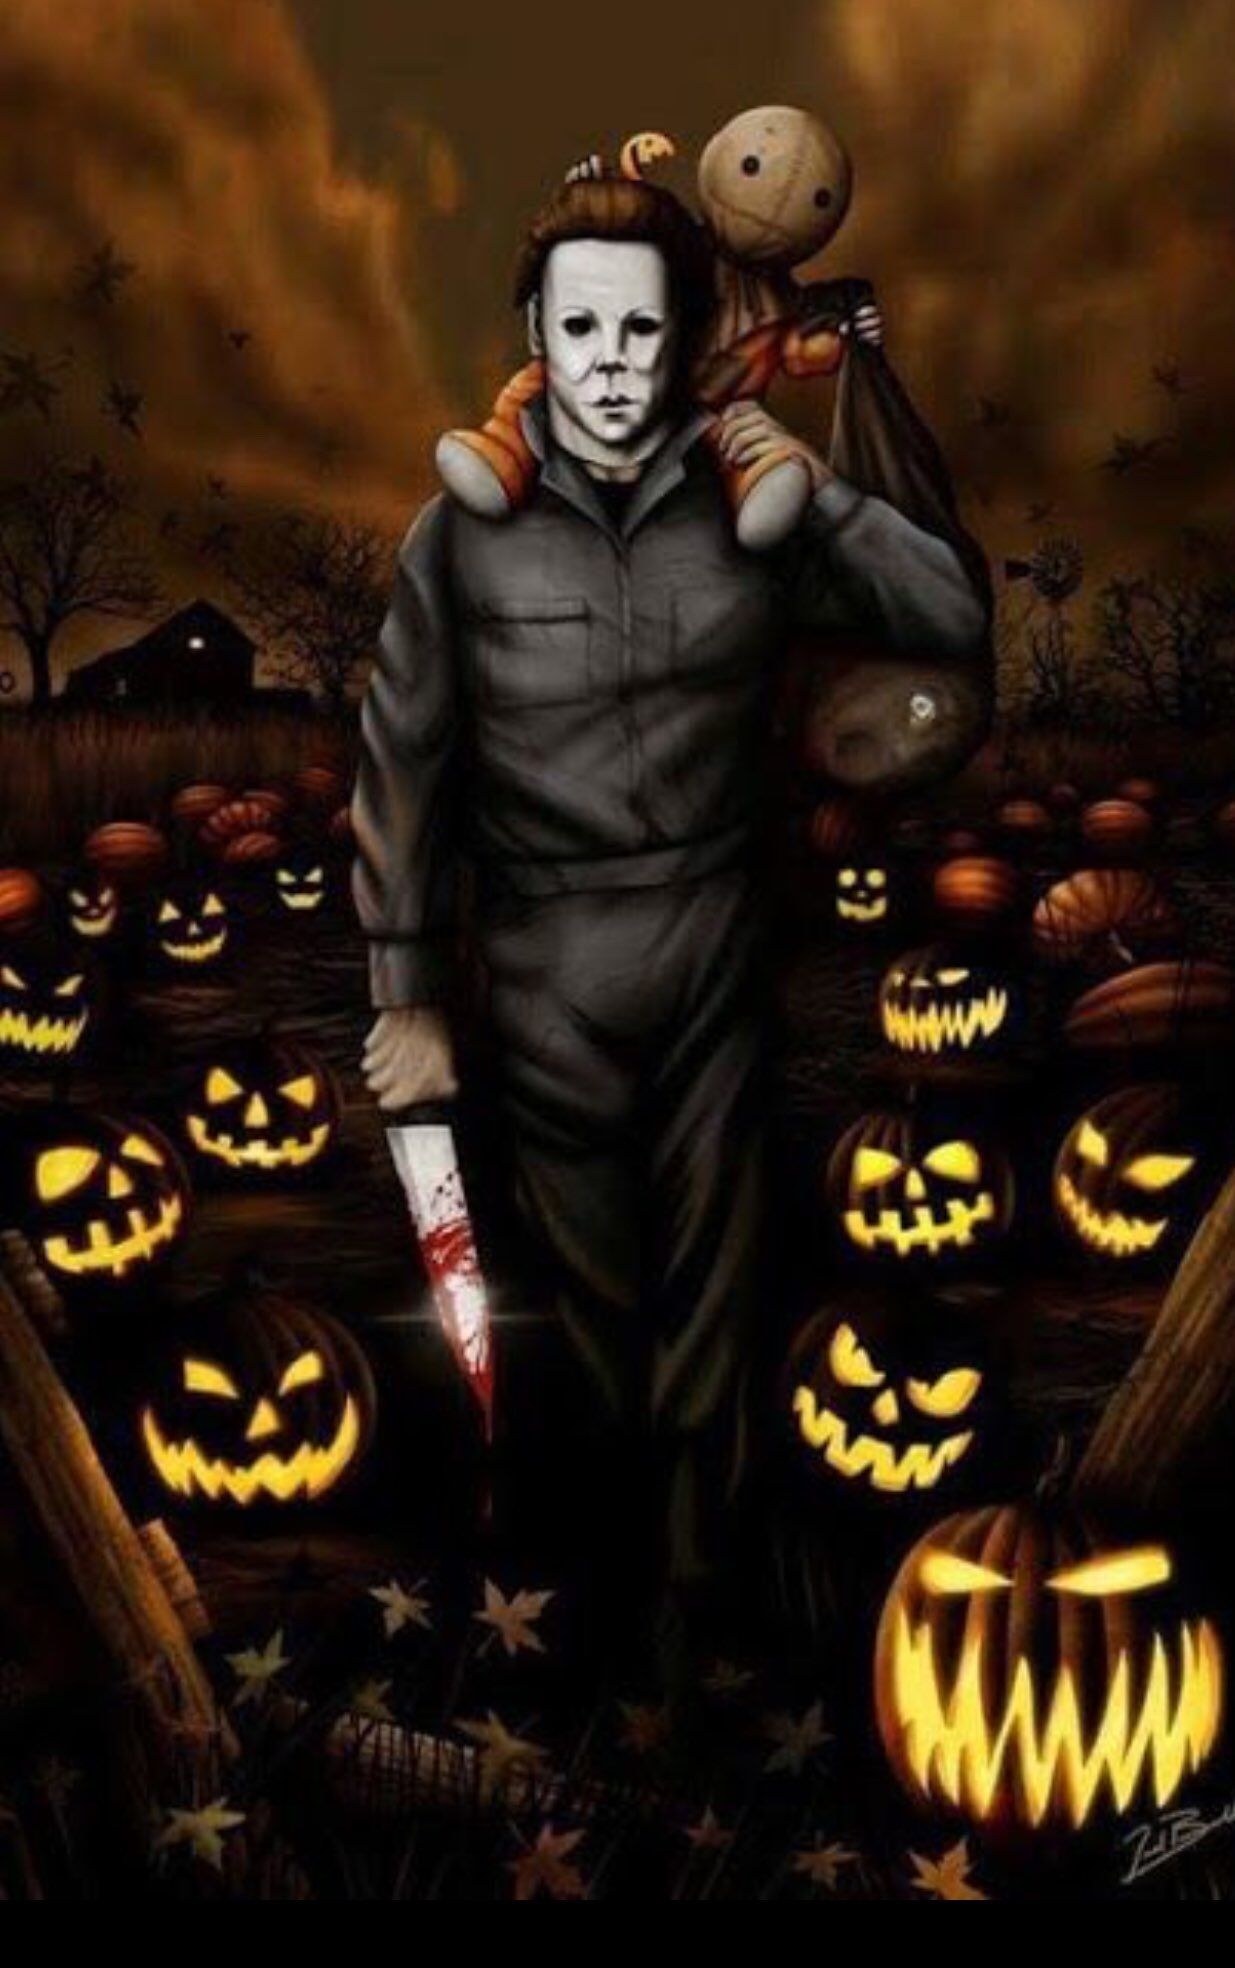 Pin by Hayden Jackson on Halloween Horror movie icons